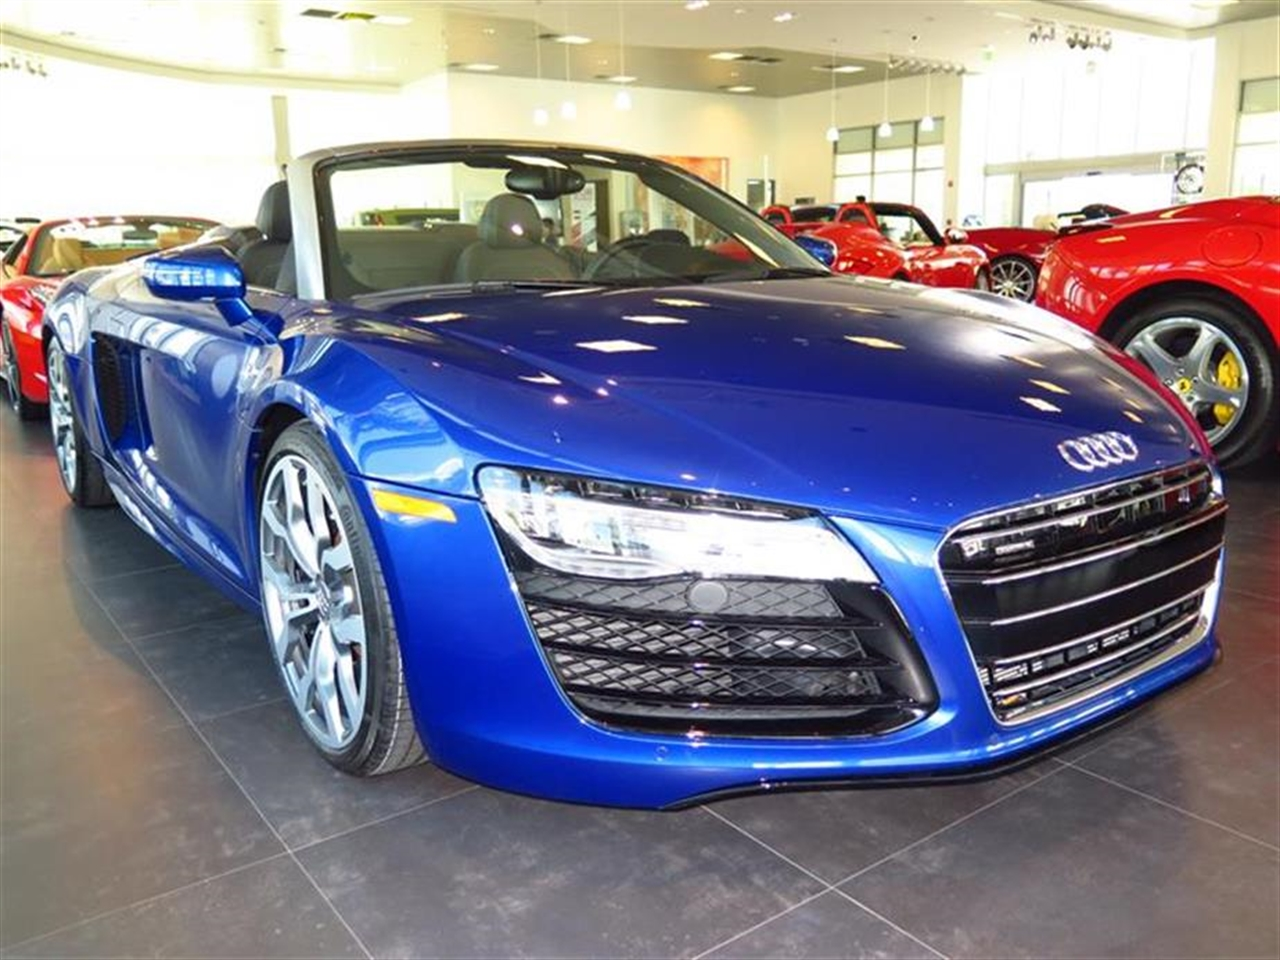 2014 AUDI R8 2dr Conv Auto quattro Spyder V10 6879 miles 2 12V DC Power Outlets 2 Person Seating